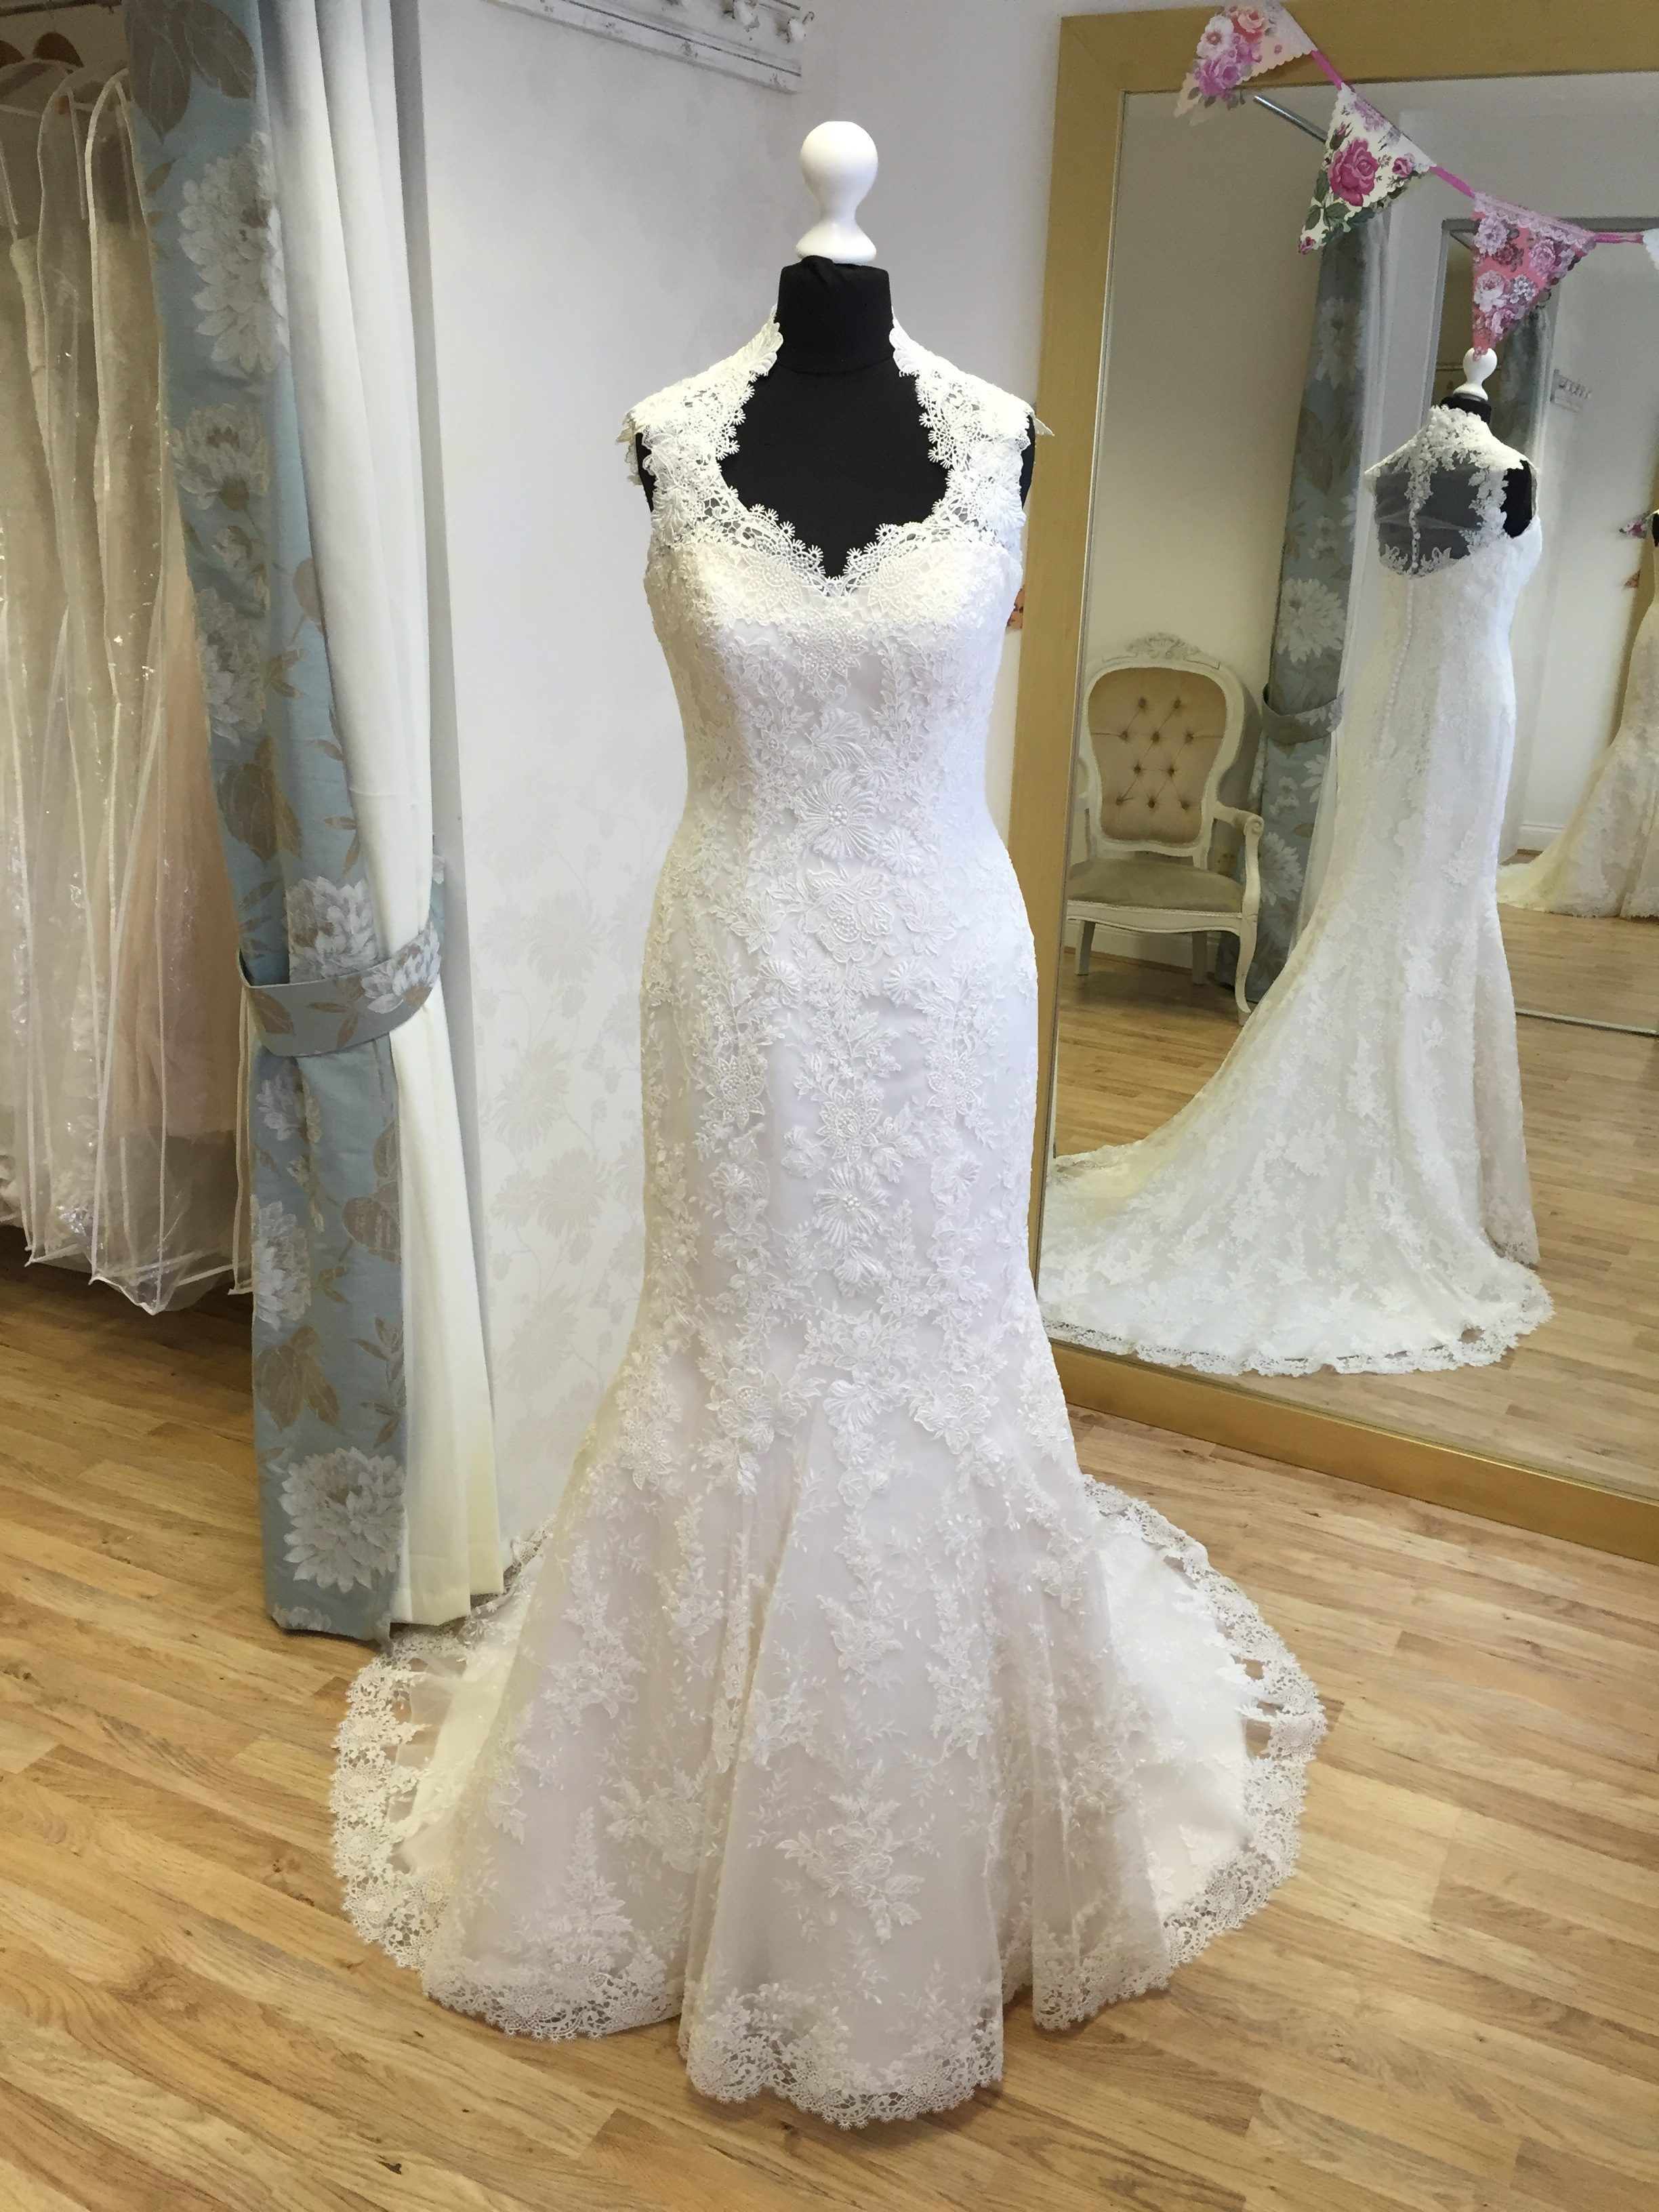 Wedding Dresses For Sale At Lucy Hart Bridal Leighton Buzzard Bedfordshire Find Your Dream Dress Less Situated In